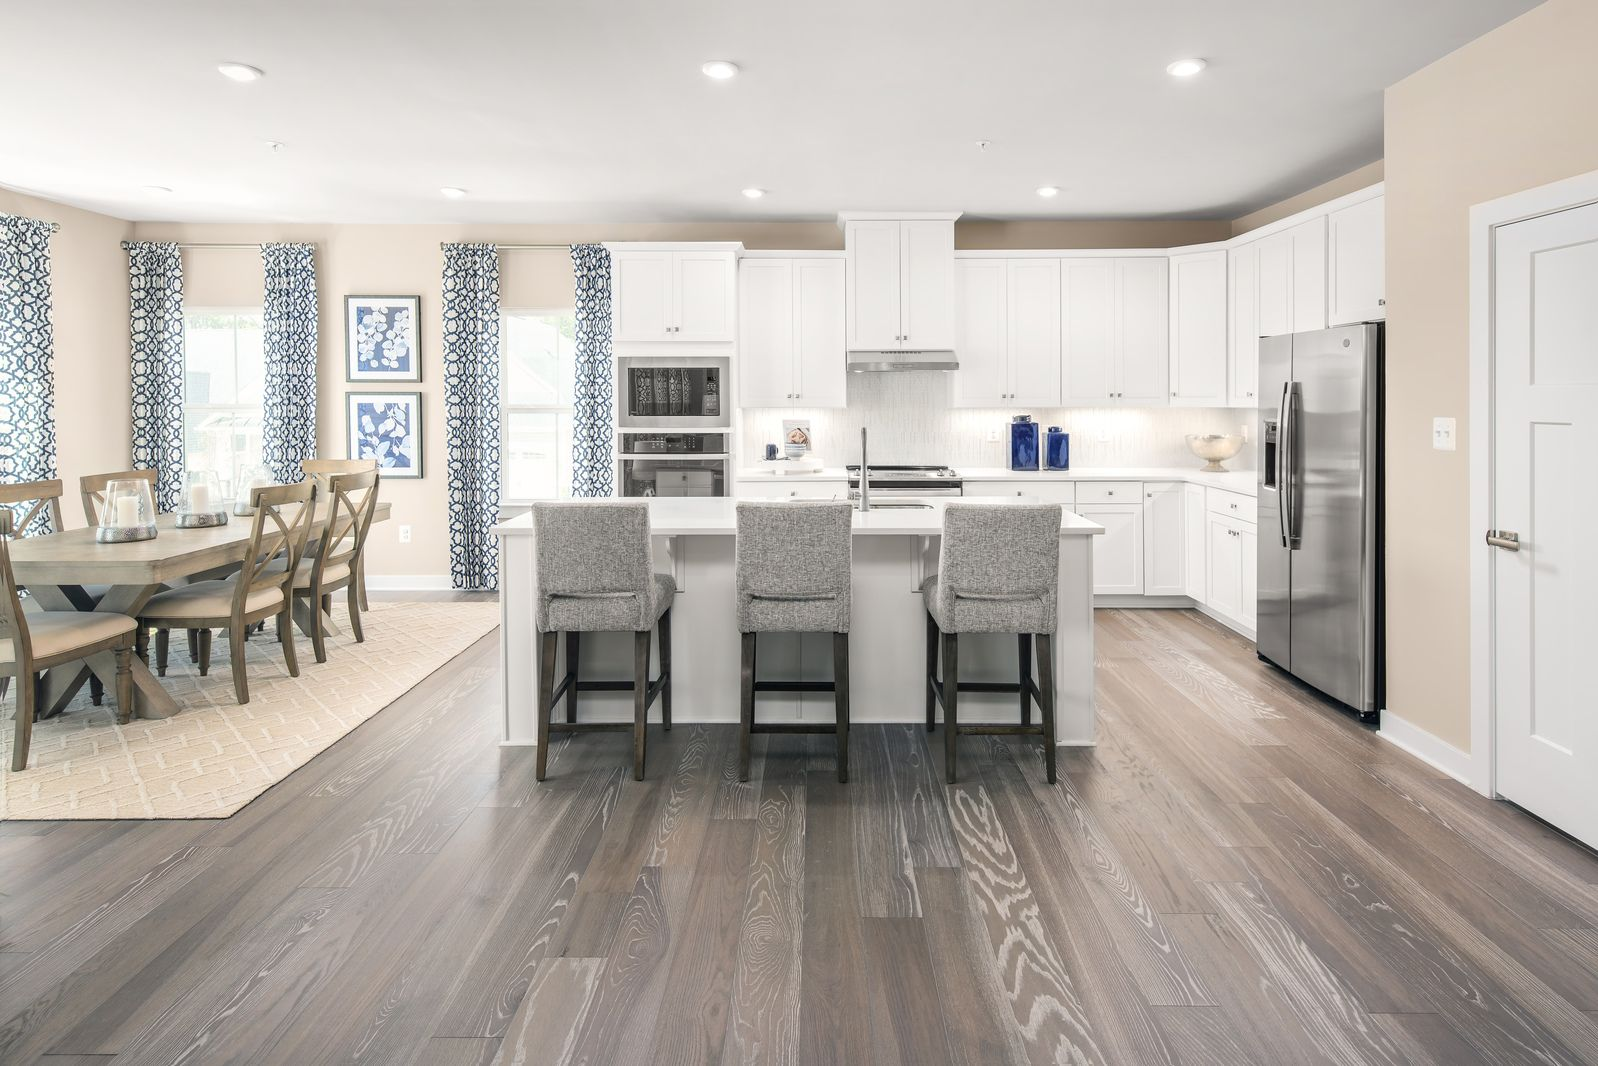 Kitchen featured in the Cumberland By Ryan Homes in Washington, MD